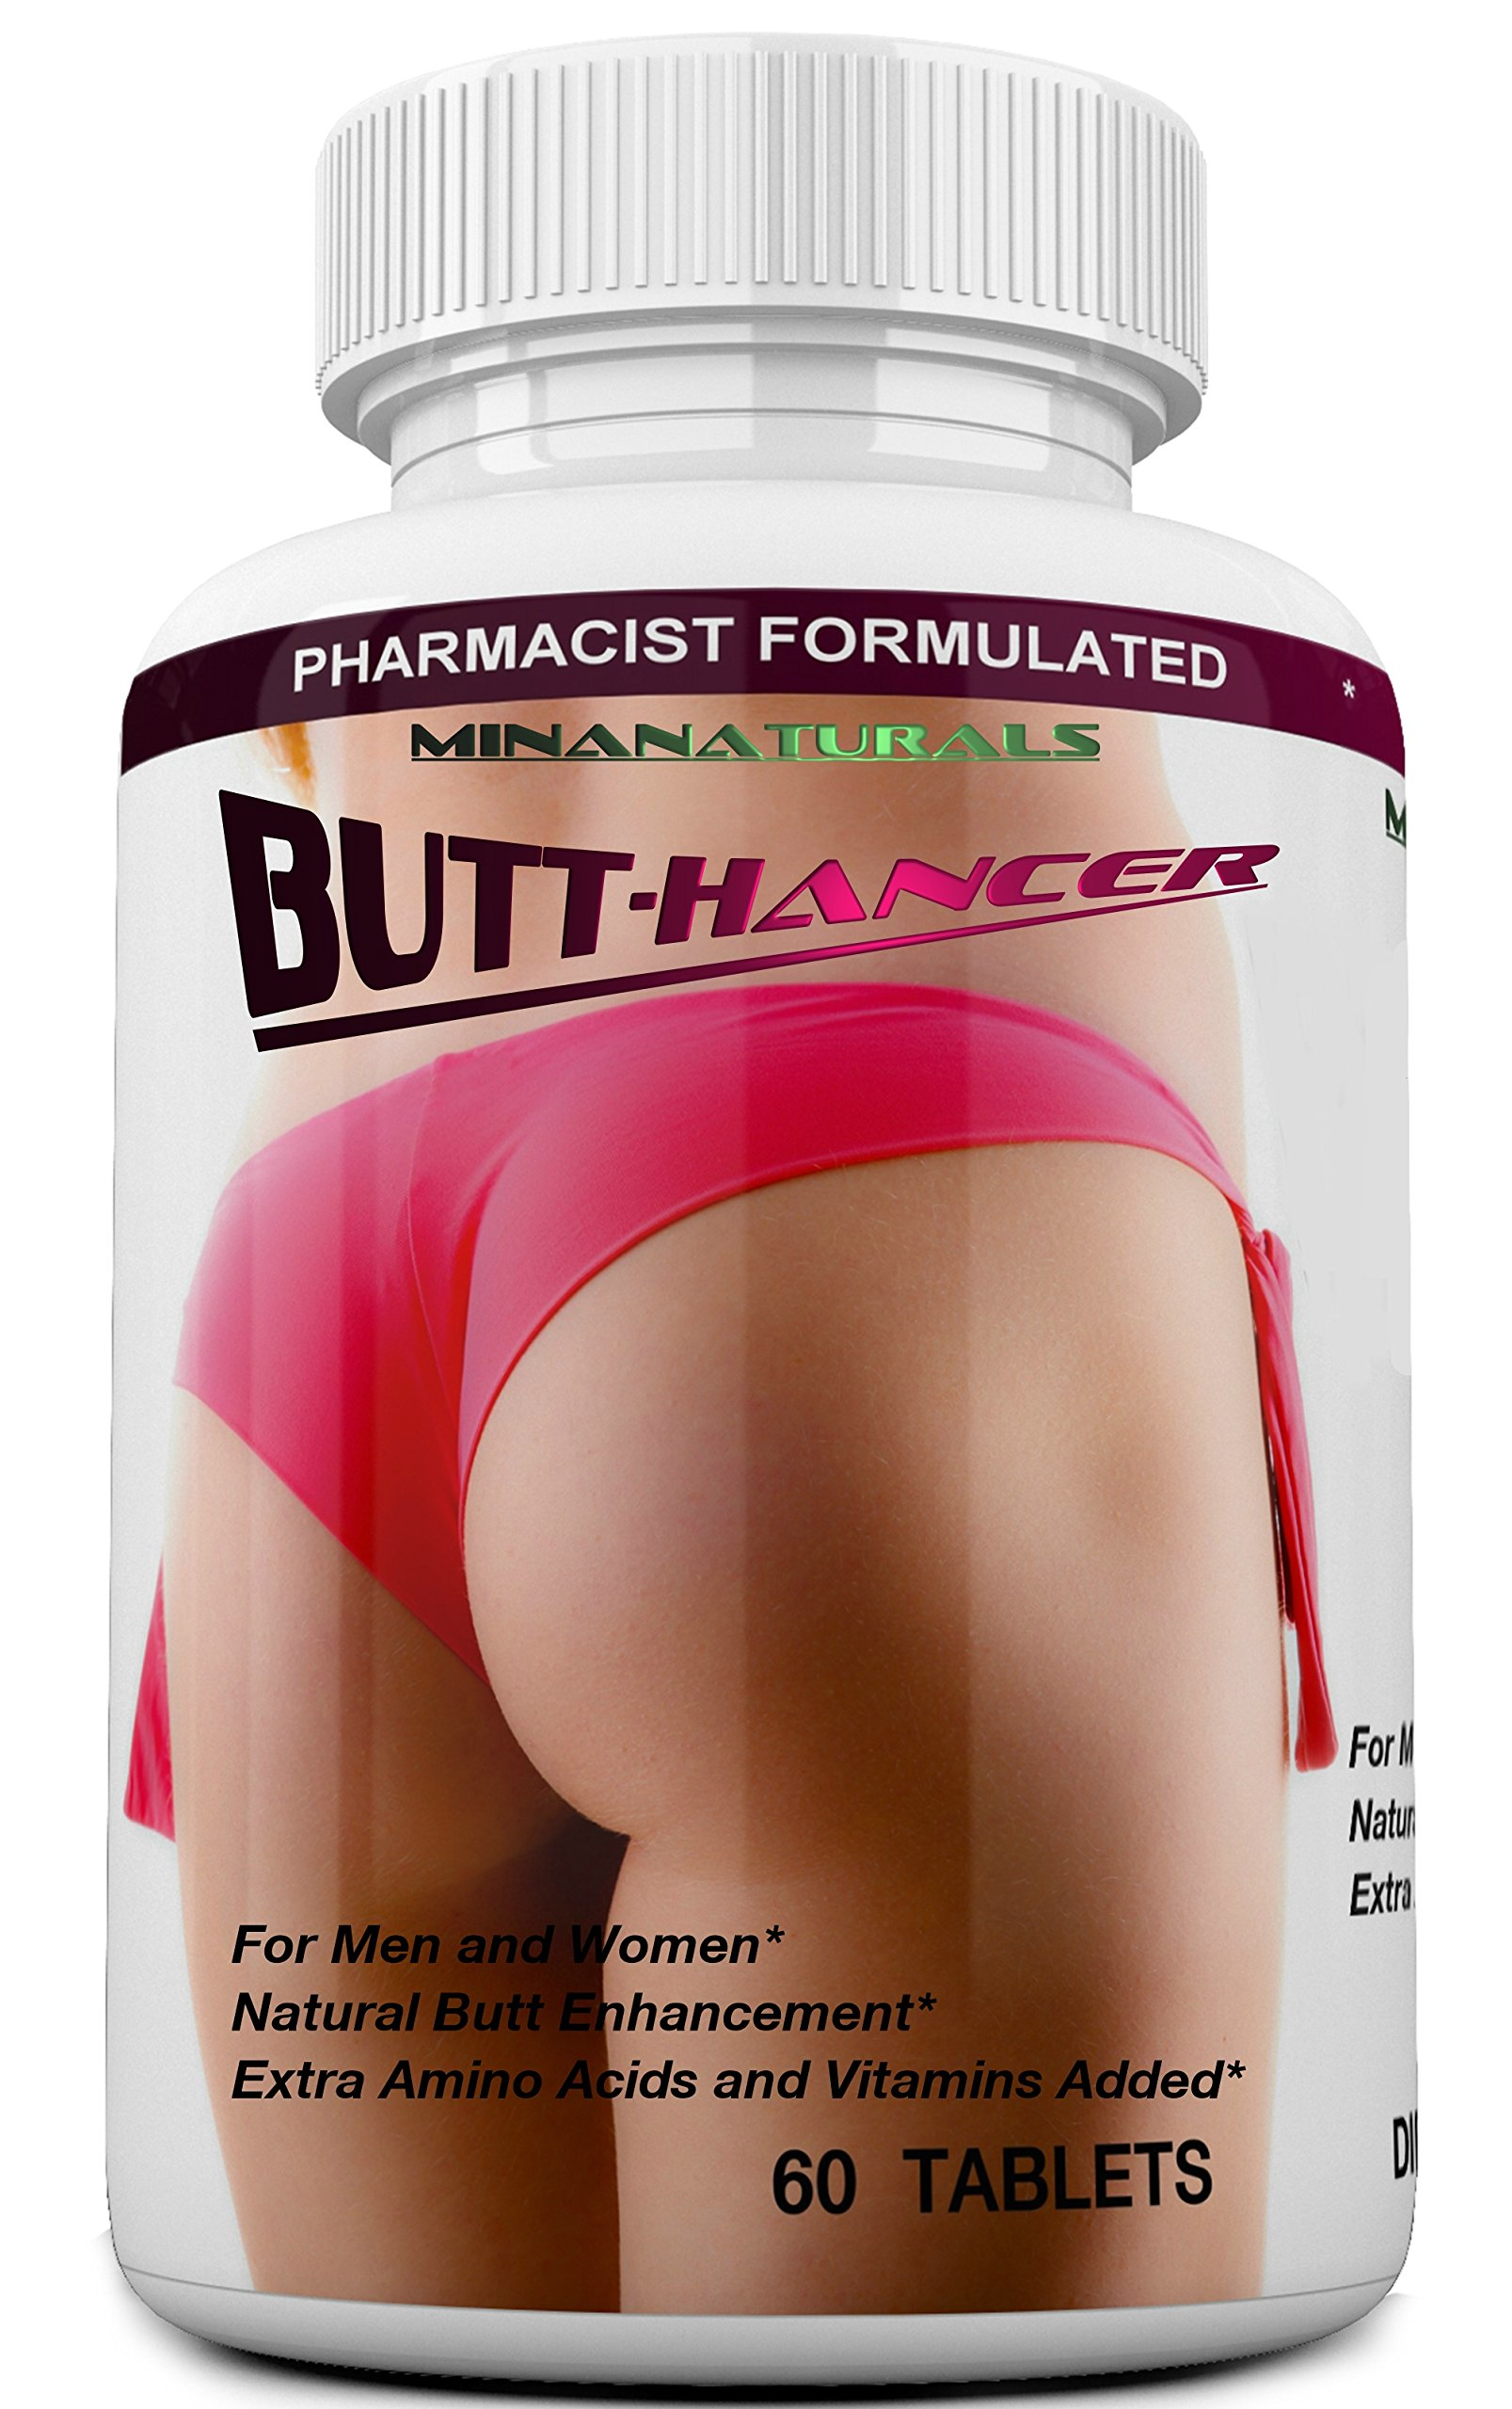 BUTTHANCER Natural Enlargement Enhancement Enhancer